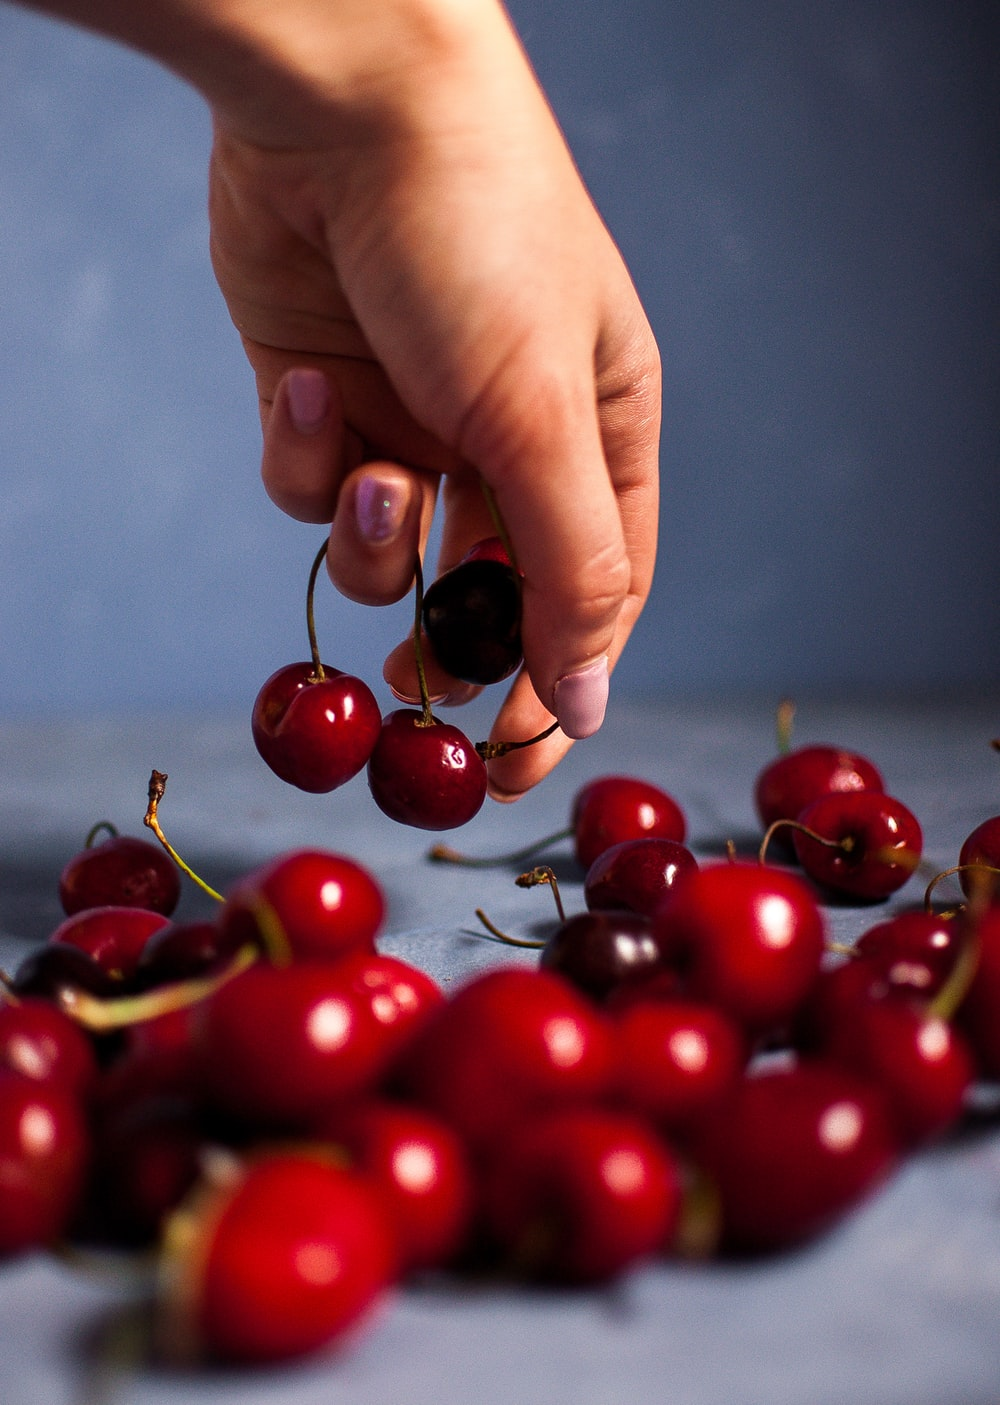 person holding cherries